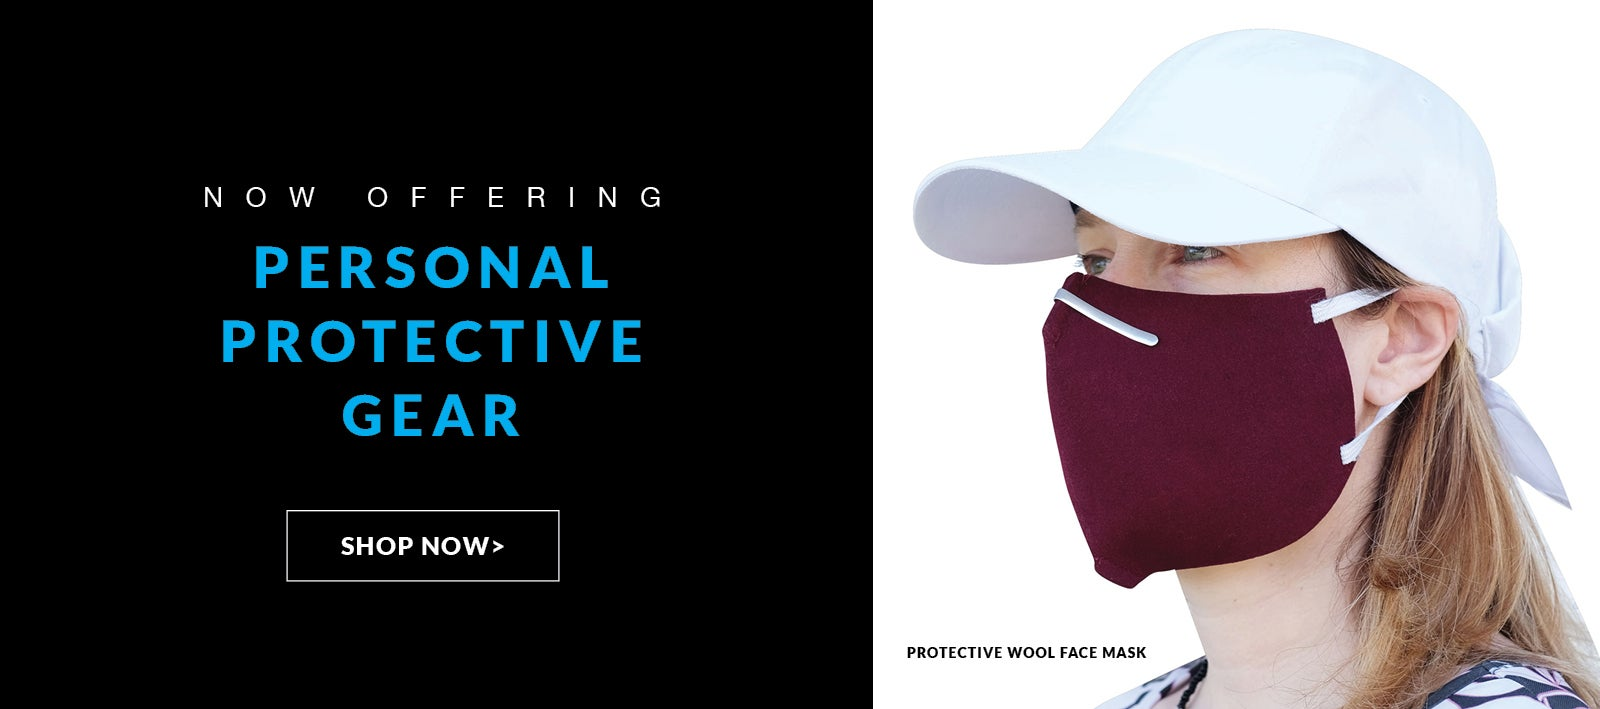 Now Offering Personal Protective Gear